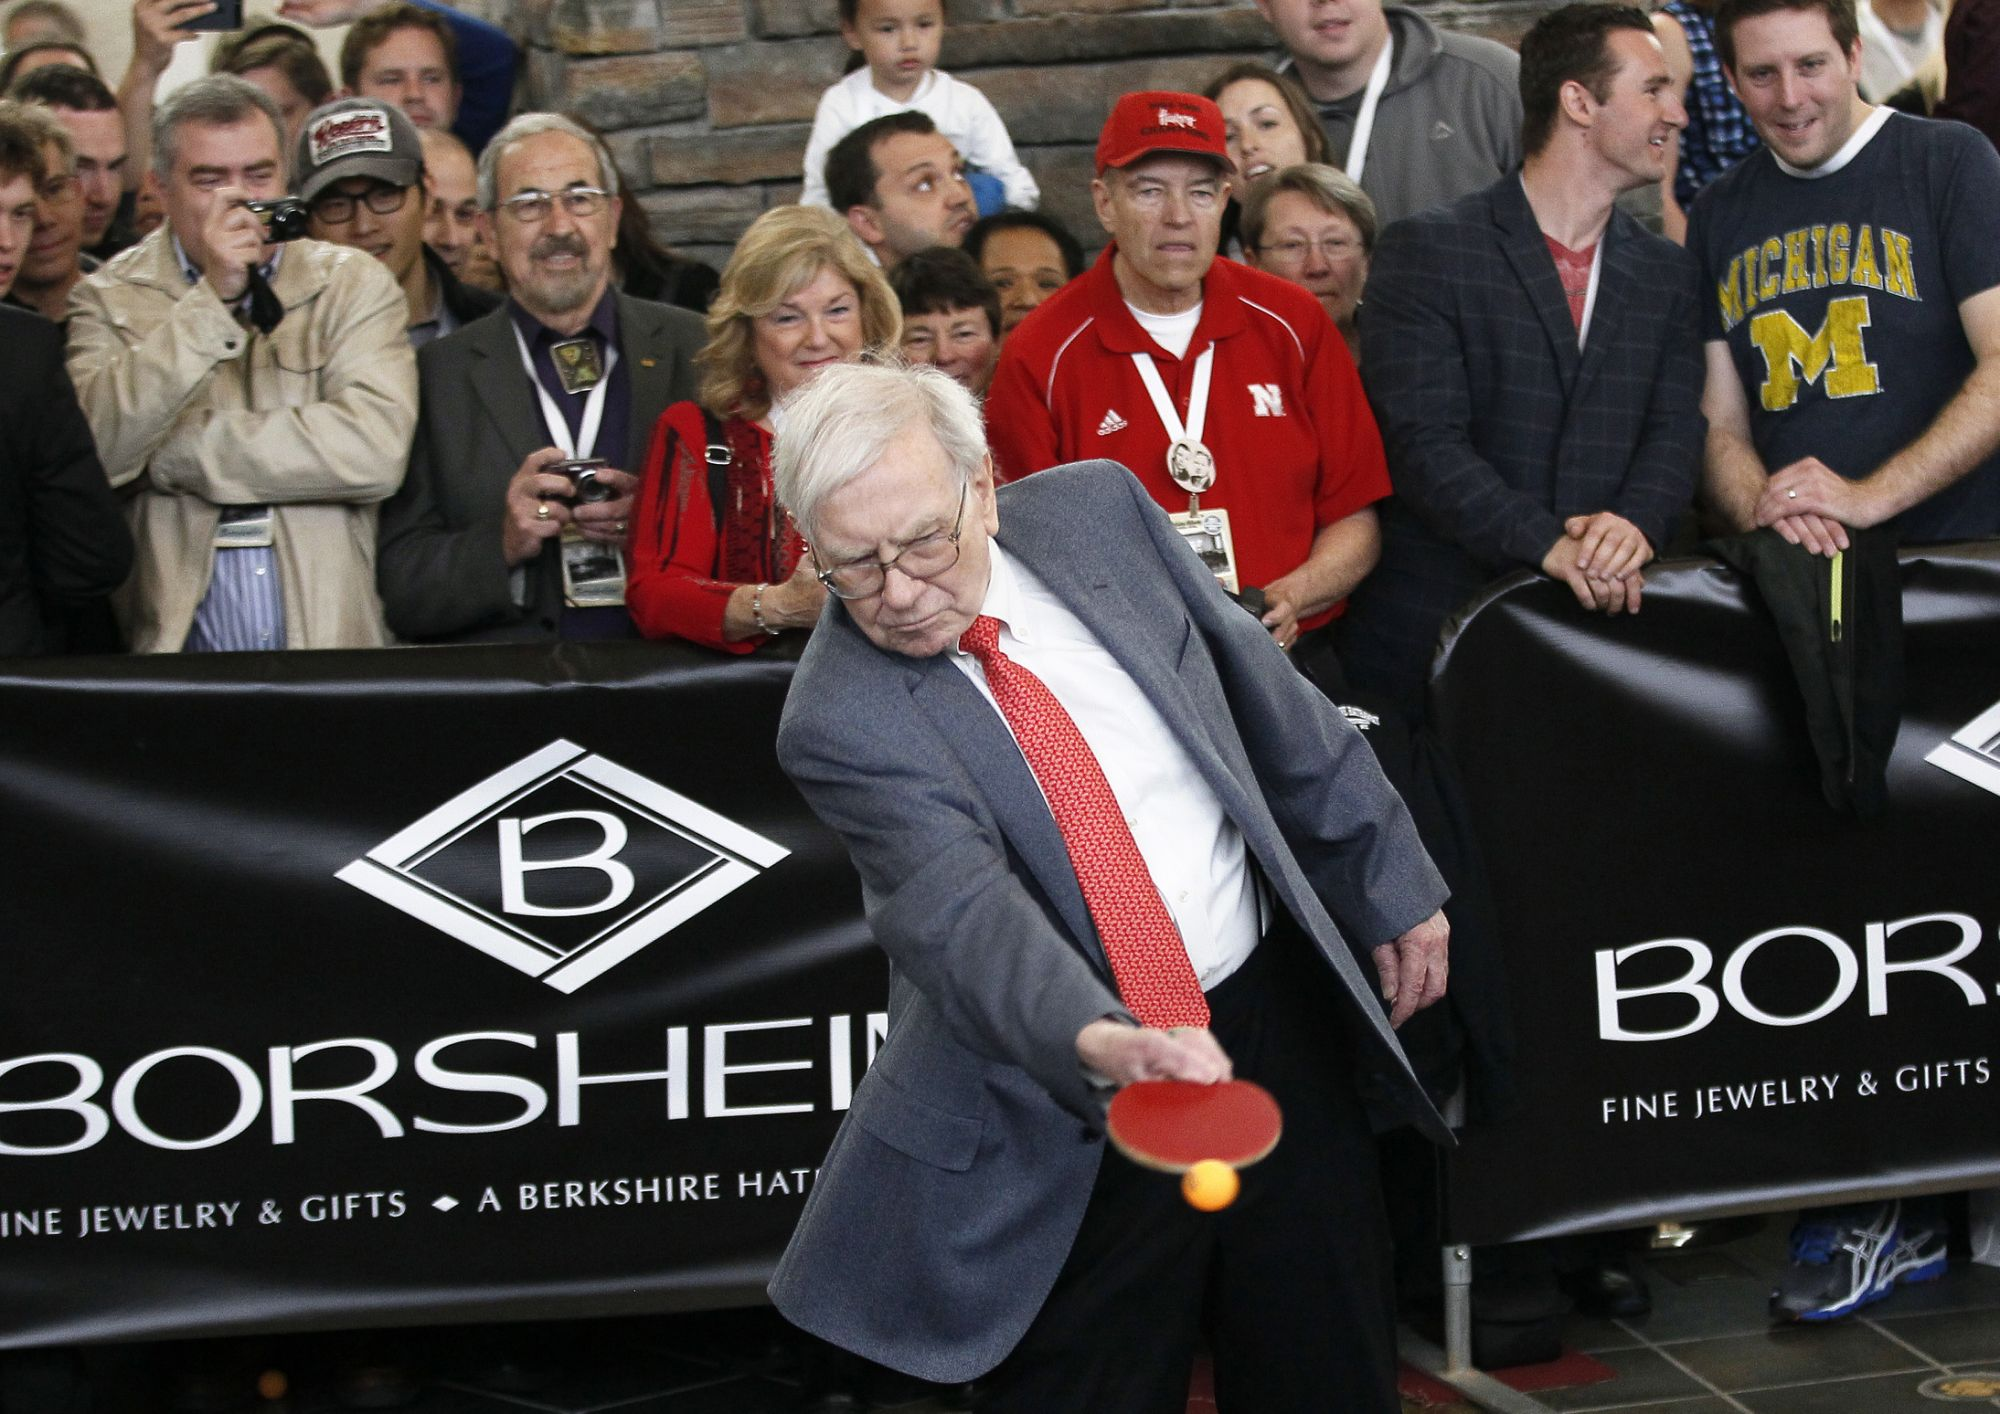 warren-buffett-is-right-to-bet-big-on-5g:-former-cisco-ceo